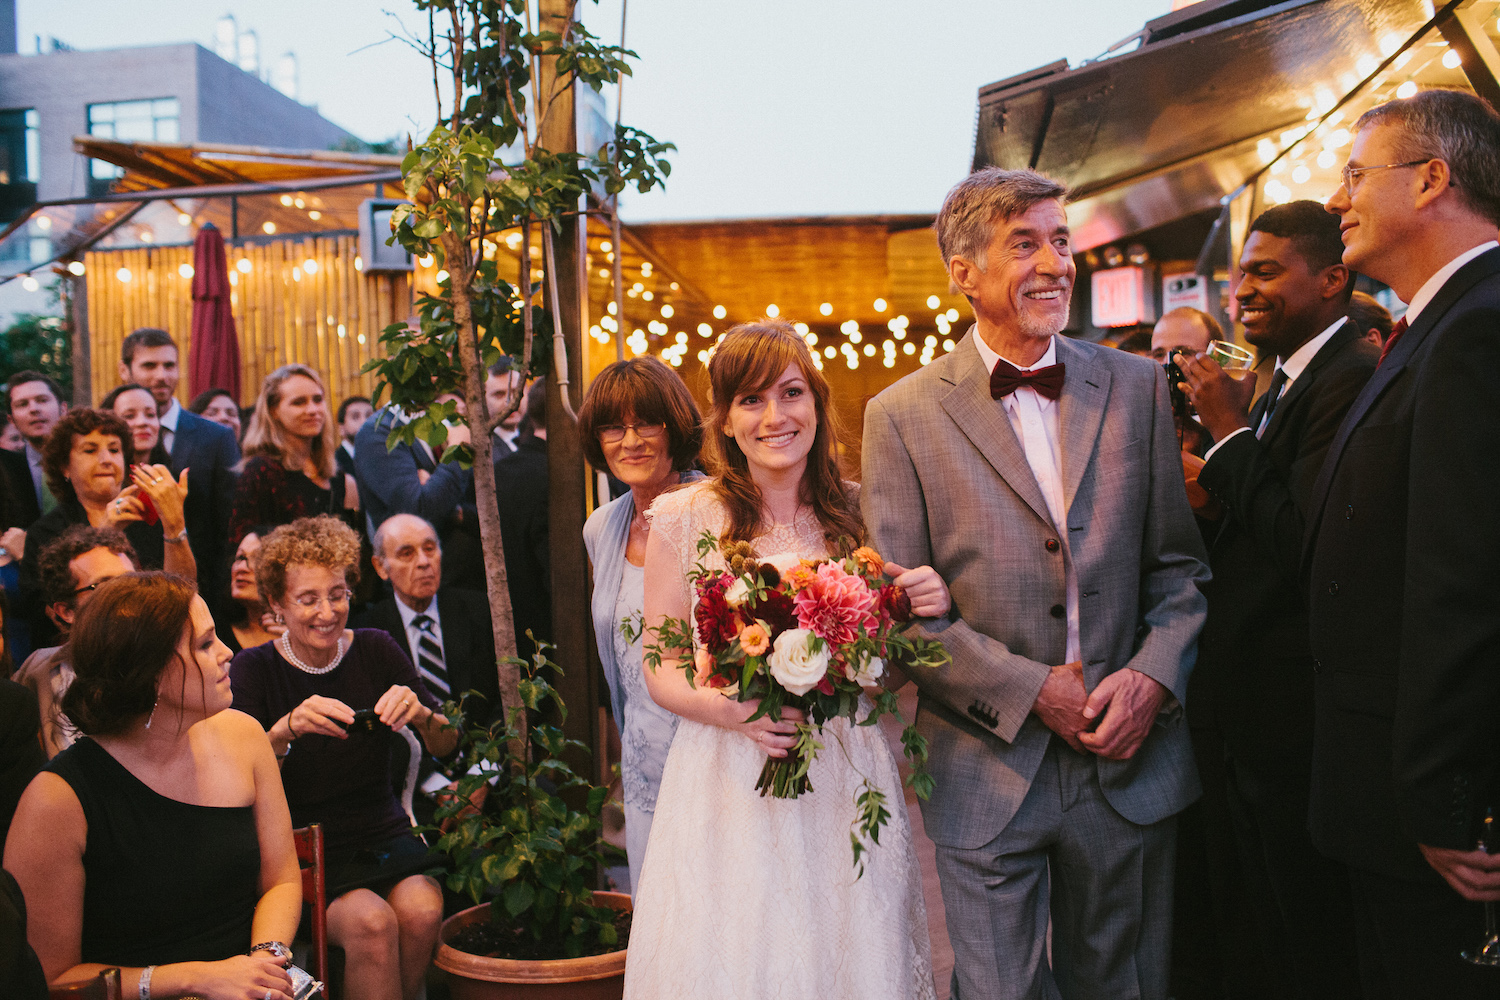 Full Aperture Floral & Corey Torpie Photography  - Brooklyn Wedding - 88.jpeg